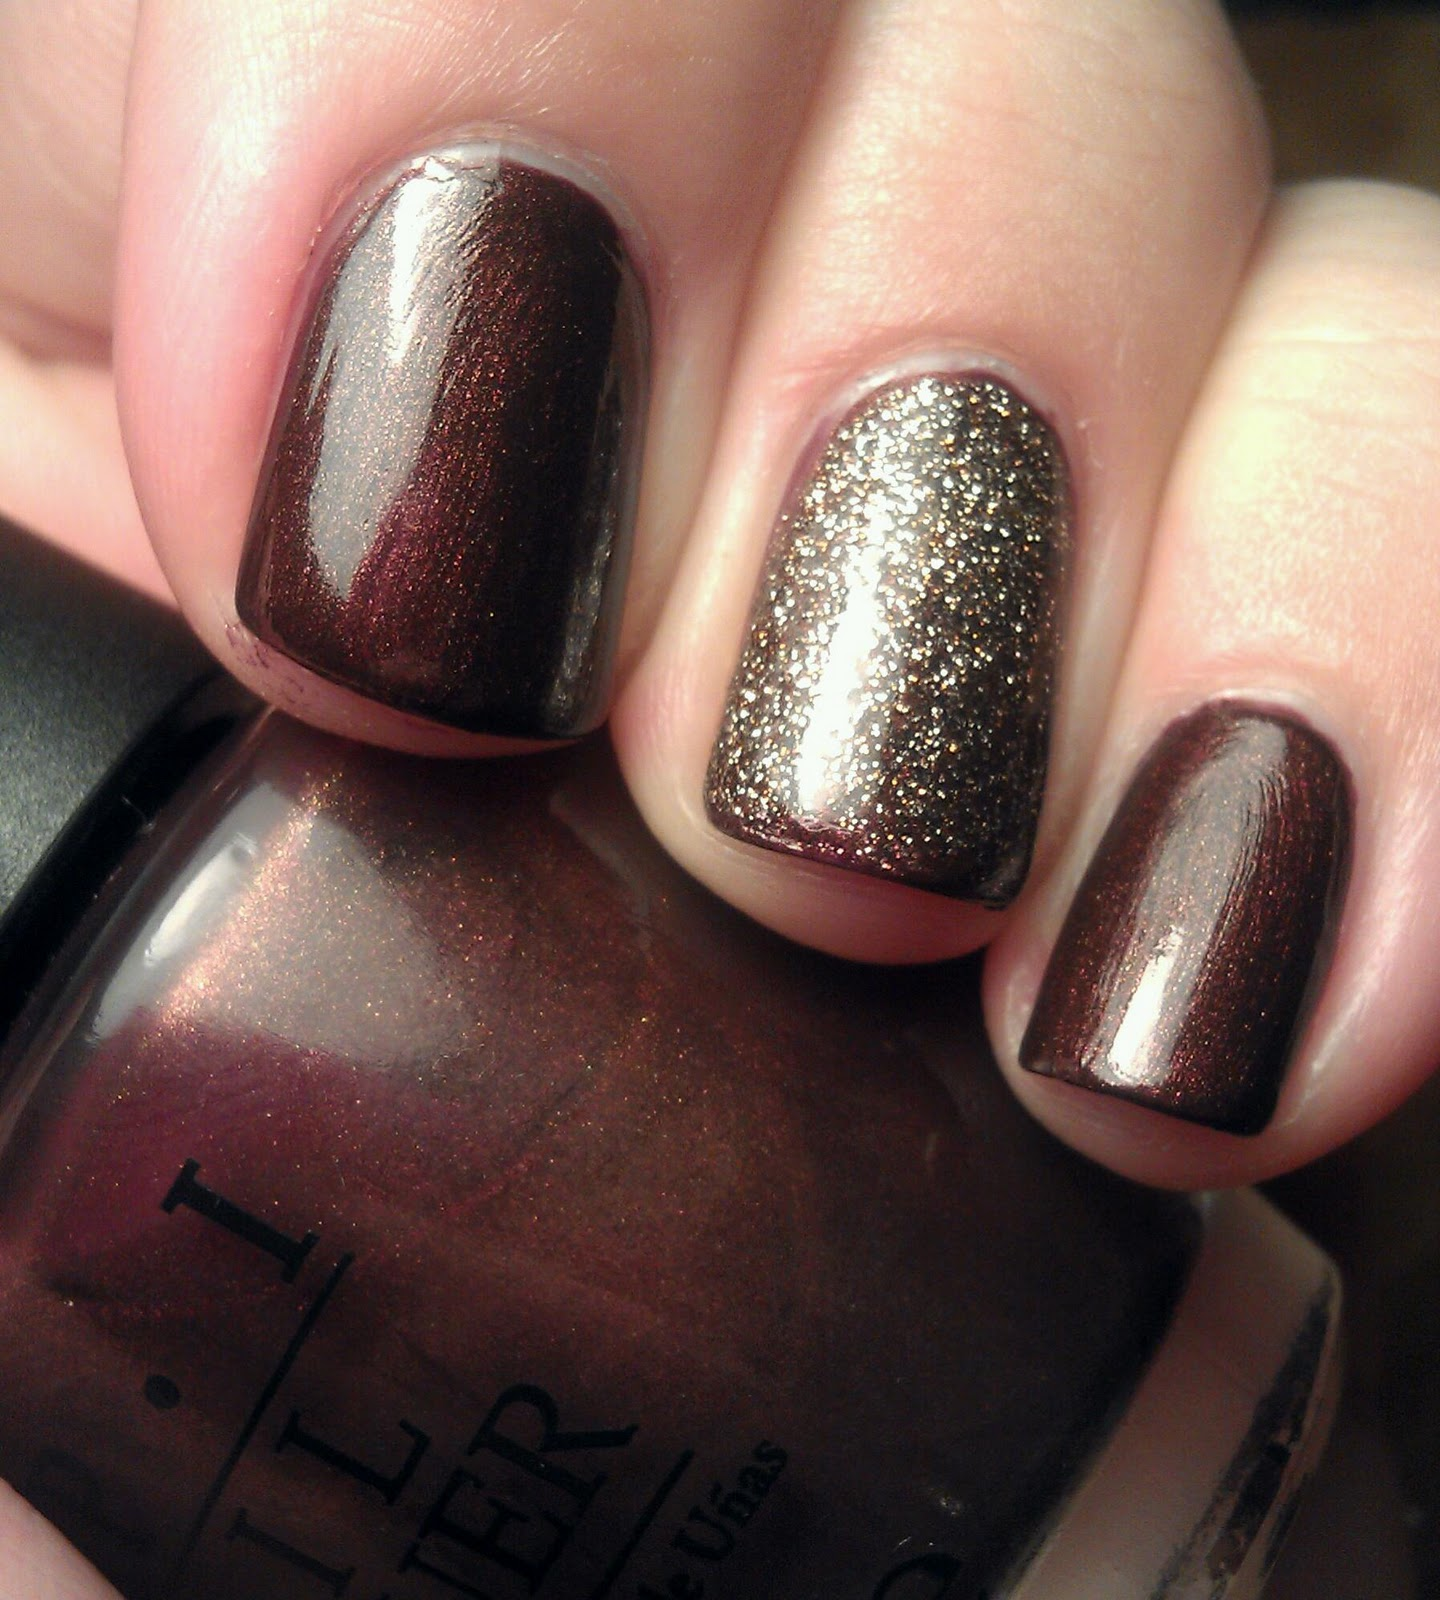 Cherryglamgirl Opi Espresso Your Style W Nubar Brown Gold Glitter Accent Nail